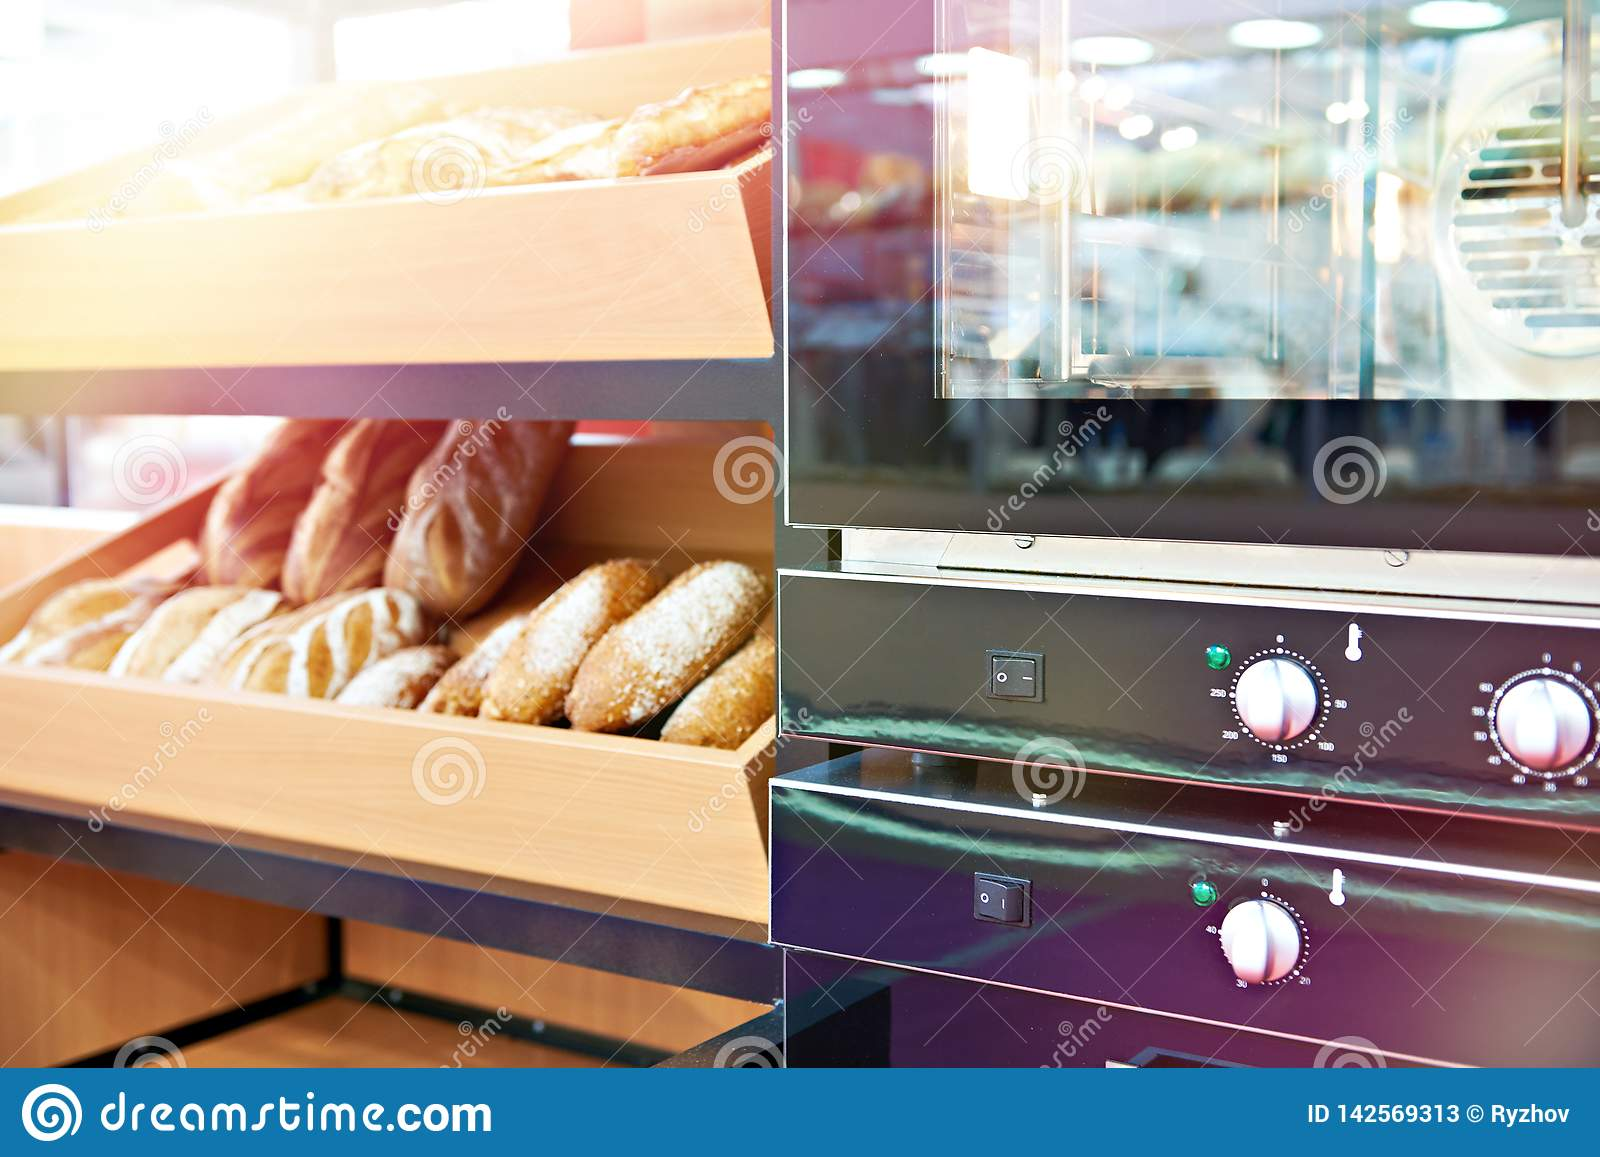 Oven and loaves of bread on shelf